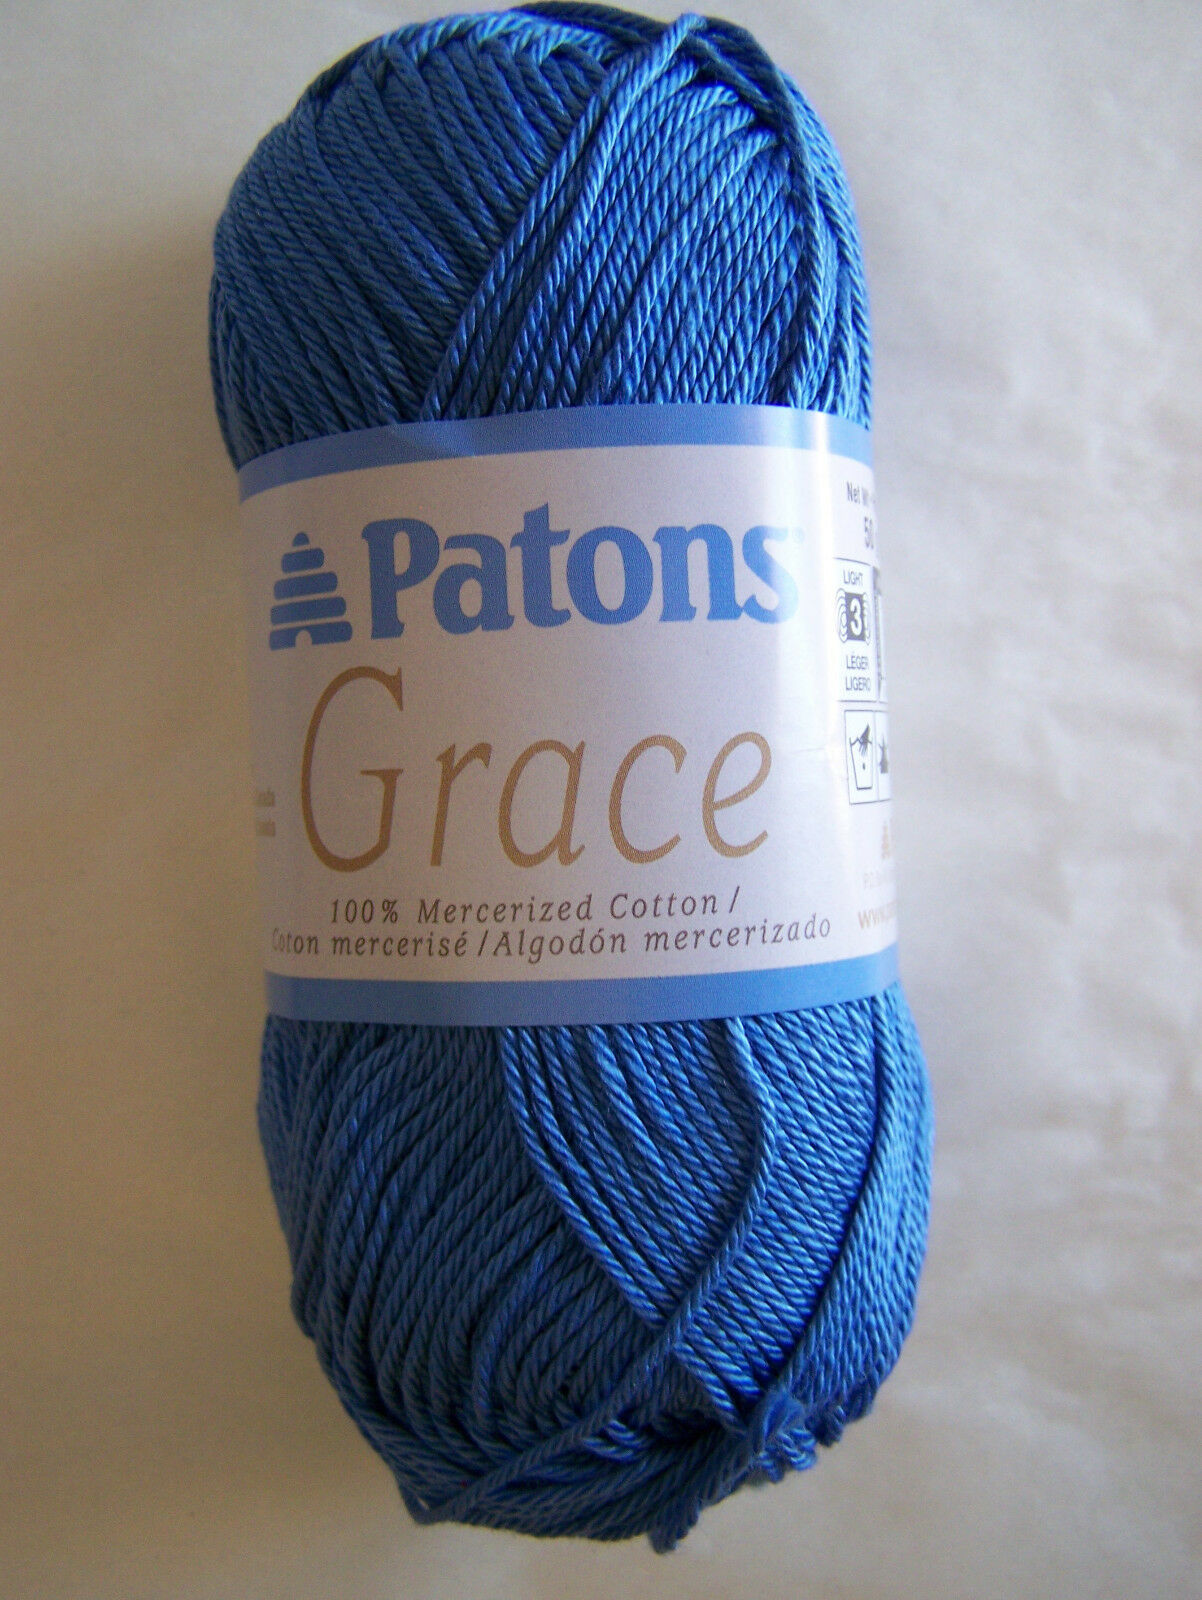 Patons GRACE 100/% mercerized cotton yarn 1 sk choice//color